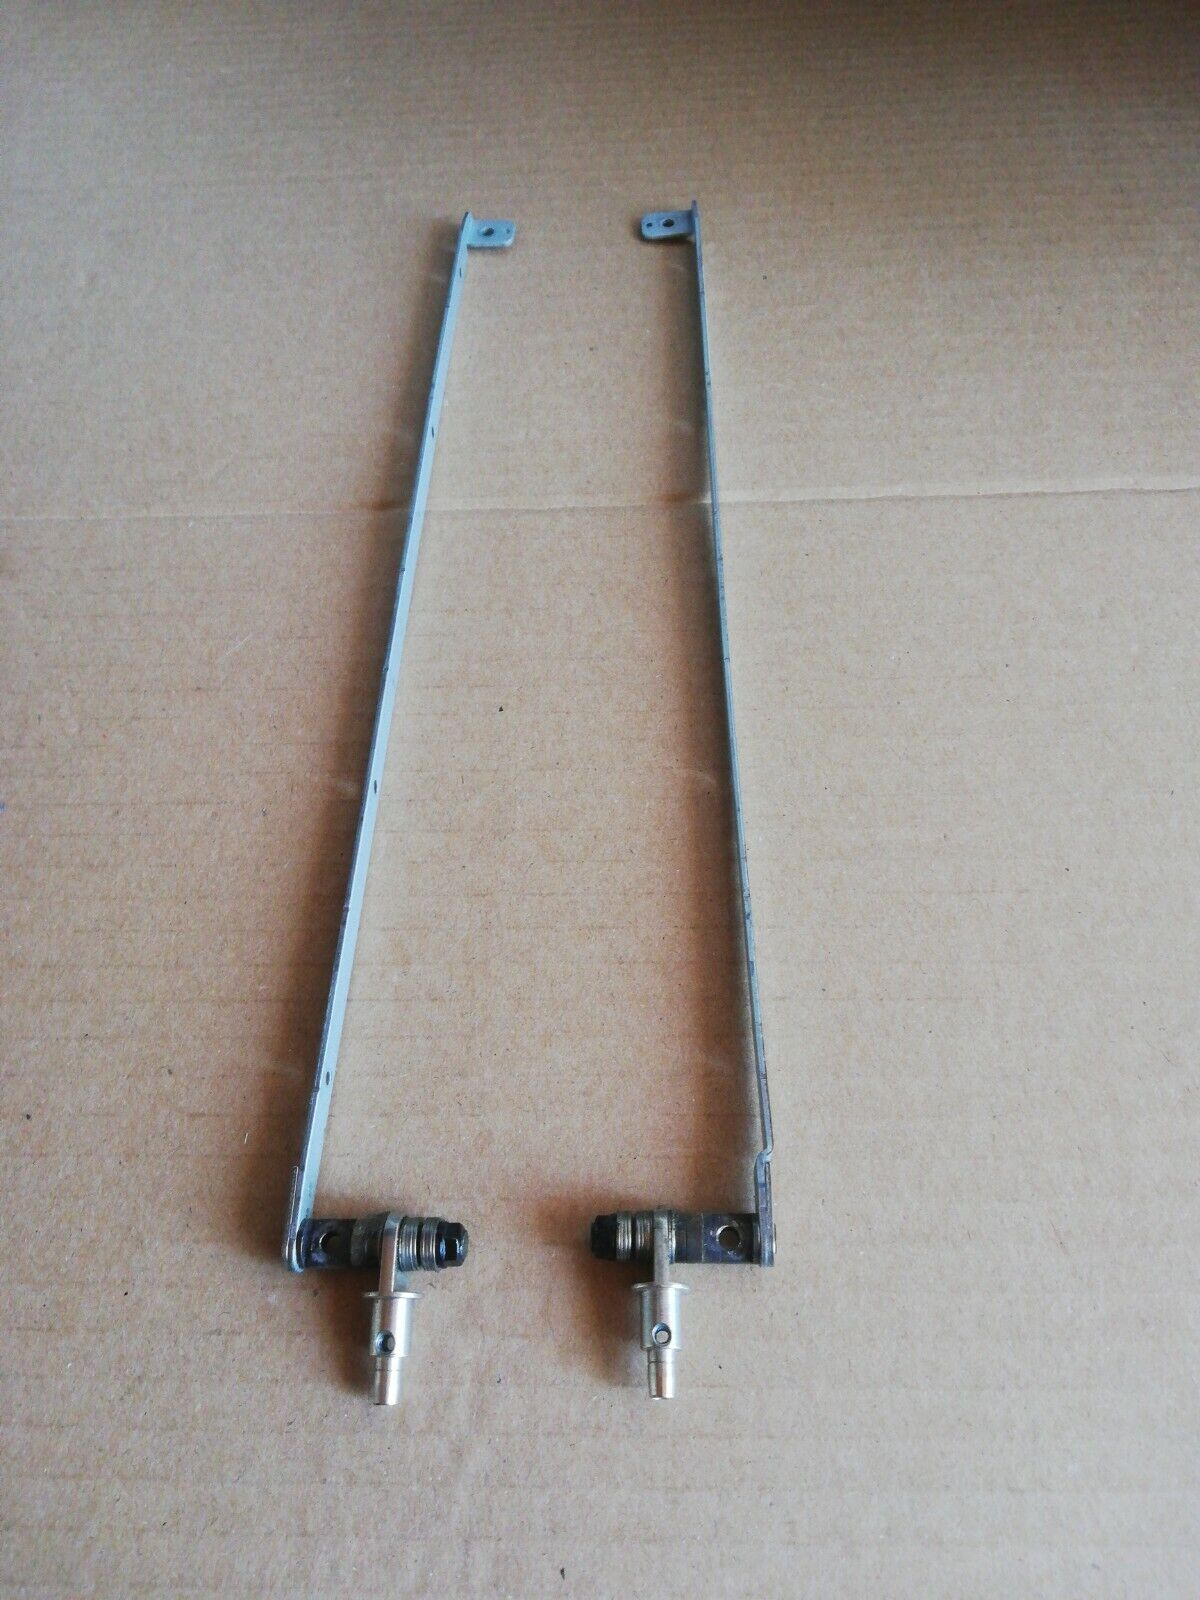 Pair Hinges fape 1001010 fape 1002010 for Packard Bell Hera GL (1625f)